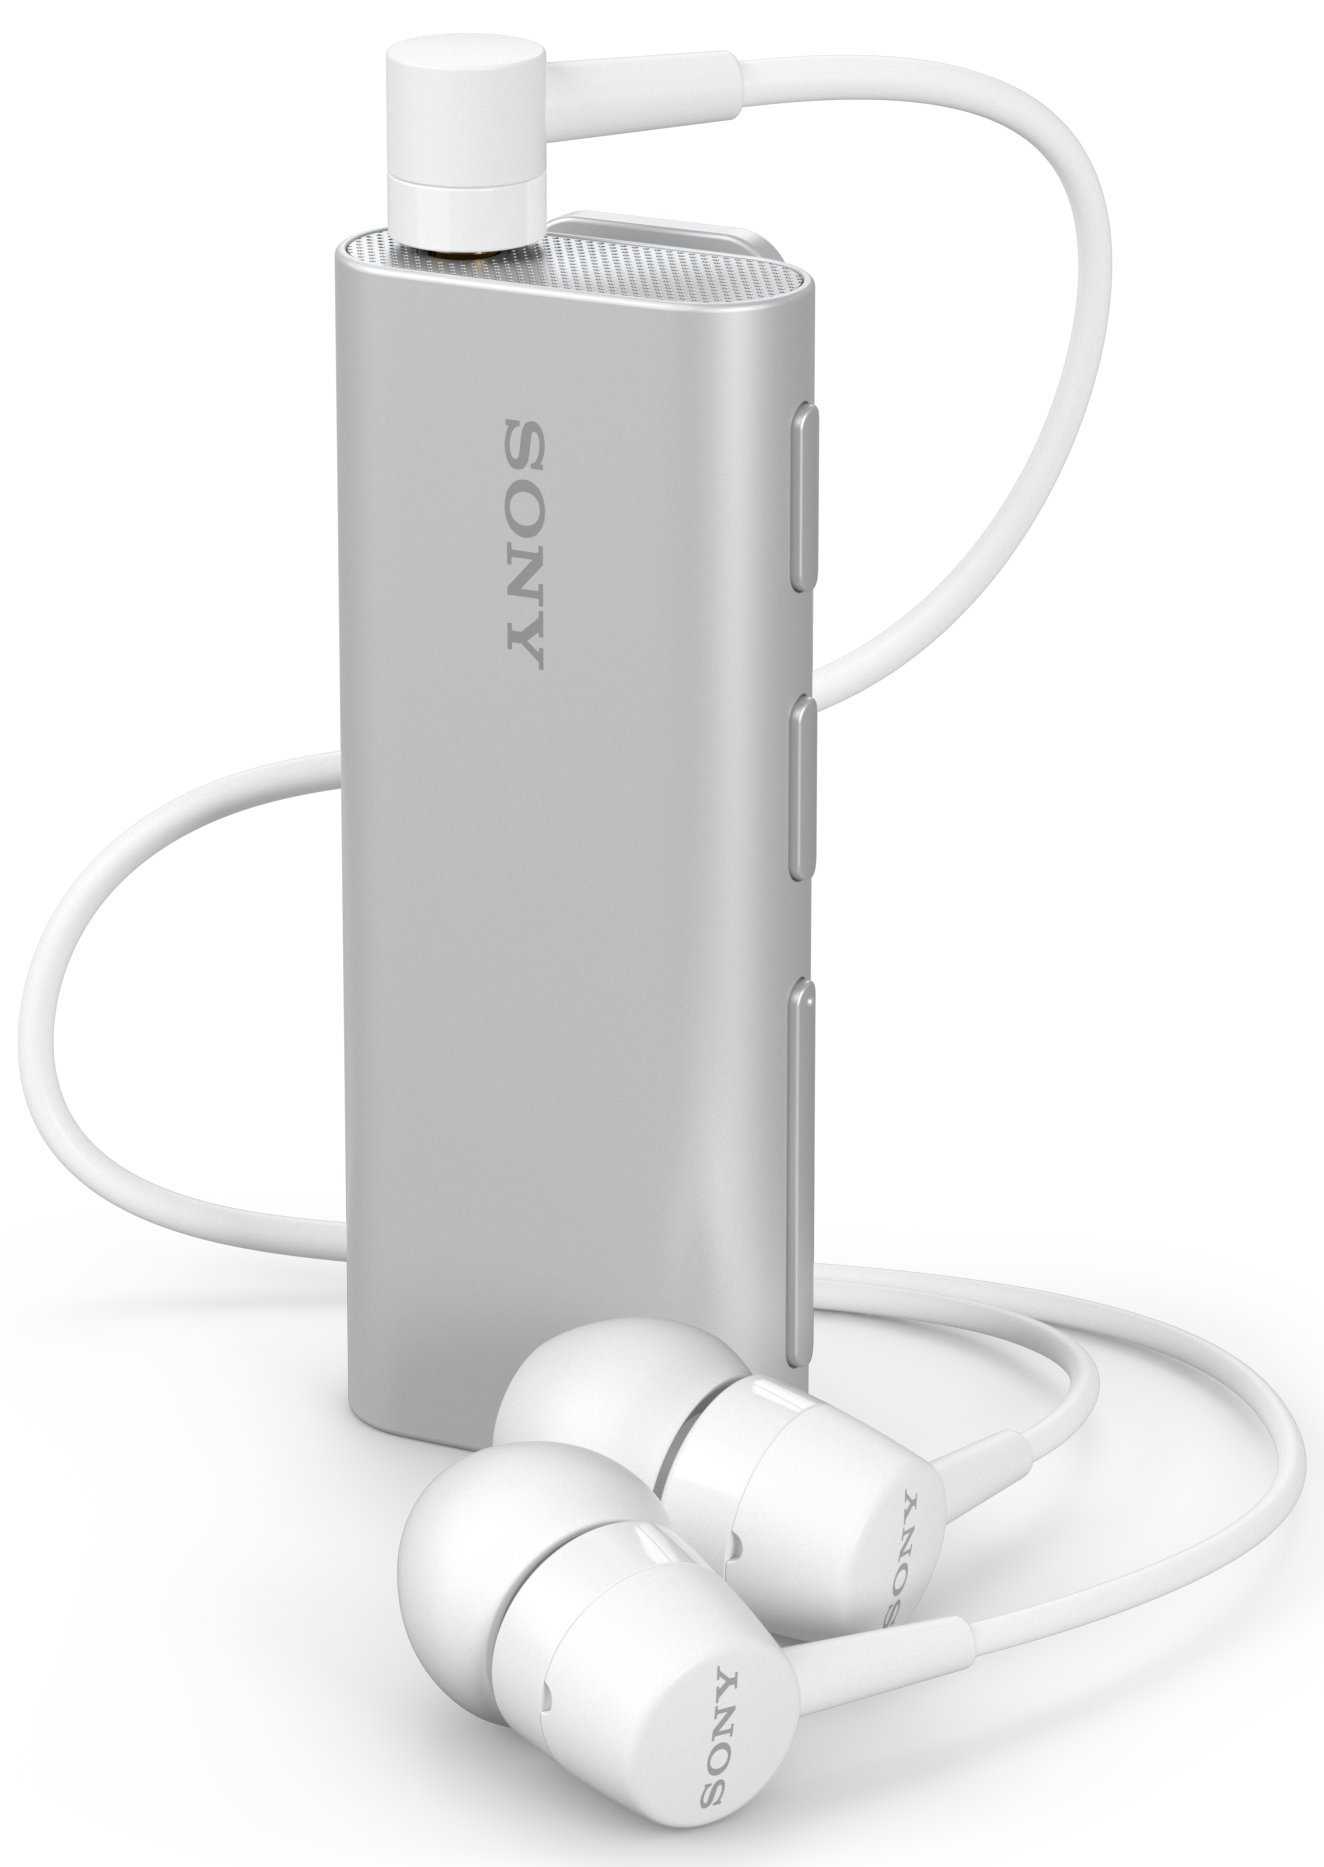 Sony Sbh24 Stereo Bluetooth Headset Pink Buy Online In Grenada Sony Products In Grenada See Prices Reviews And Free Delivery Over Ex 200 Desertcart